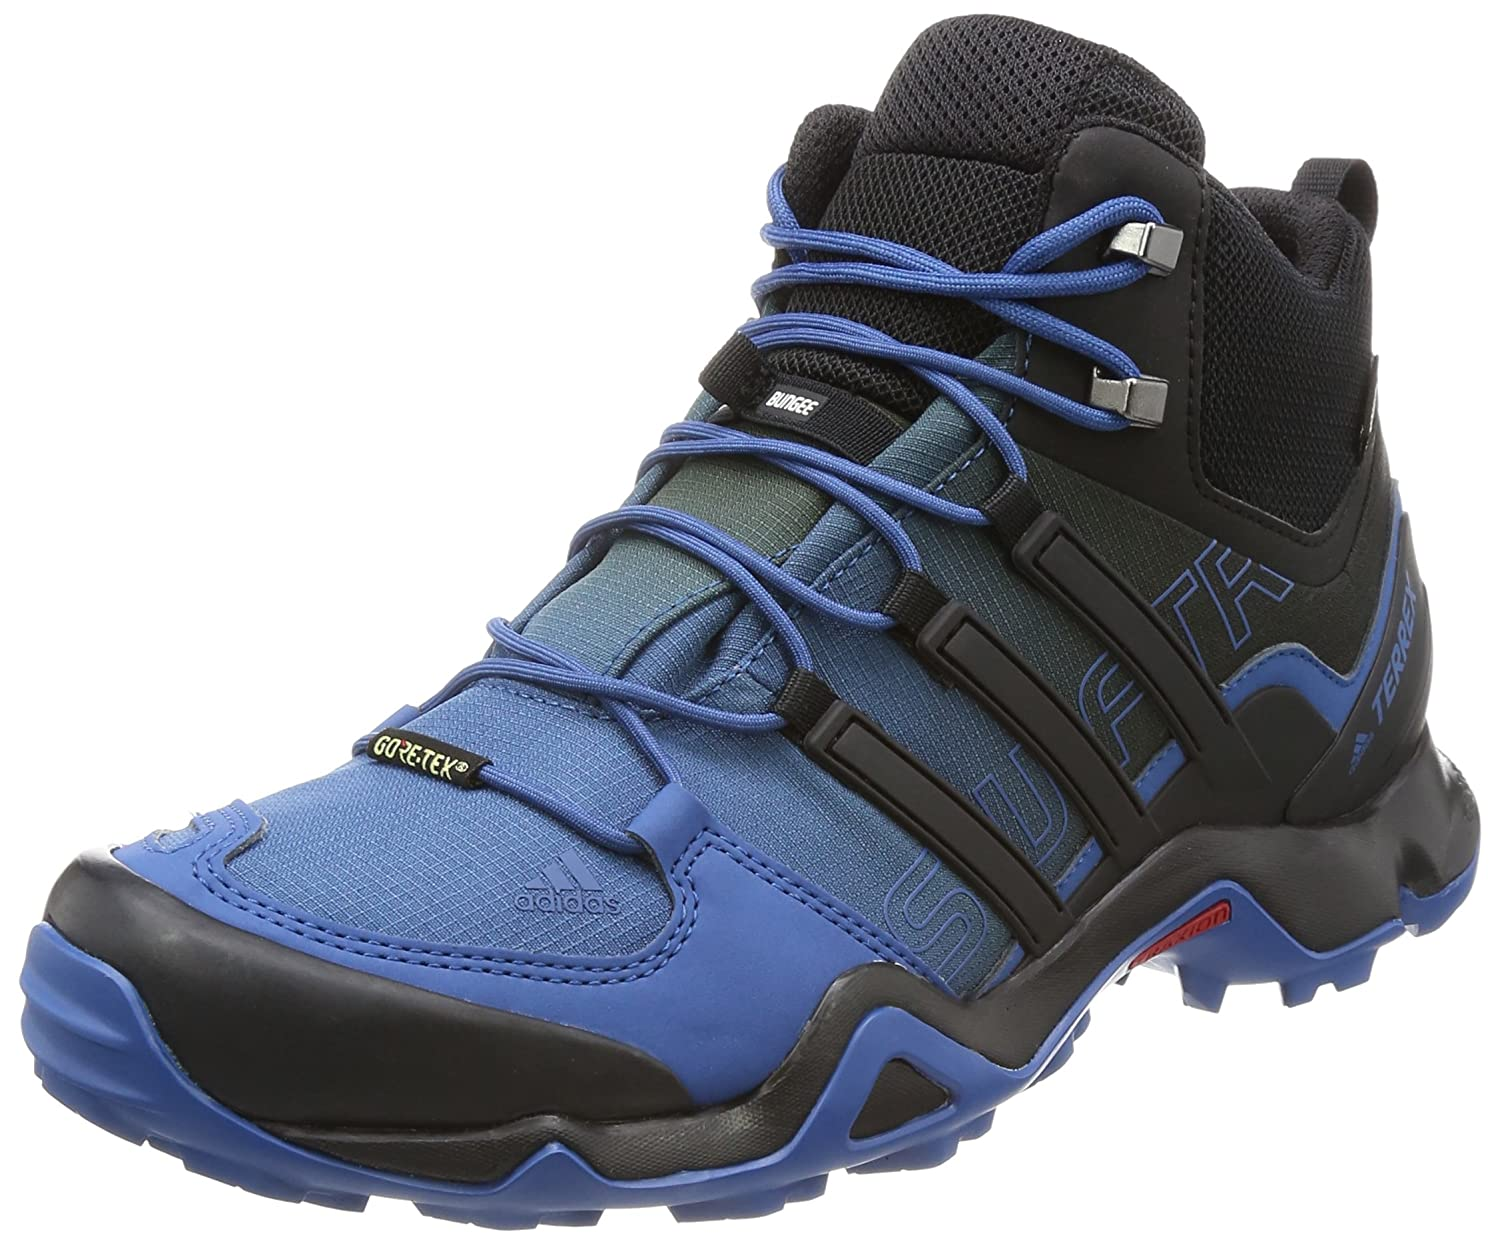 65c145d21f315 adidas Men s Terrex Ax2r Mid GTX Hiking Boots  Amazon.co.uk  Shoes   Bags